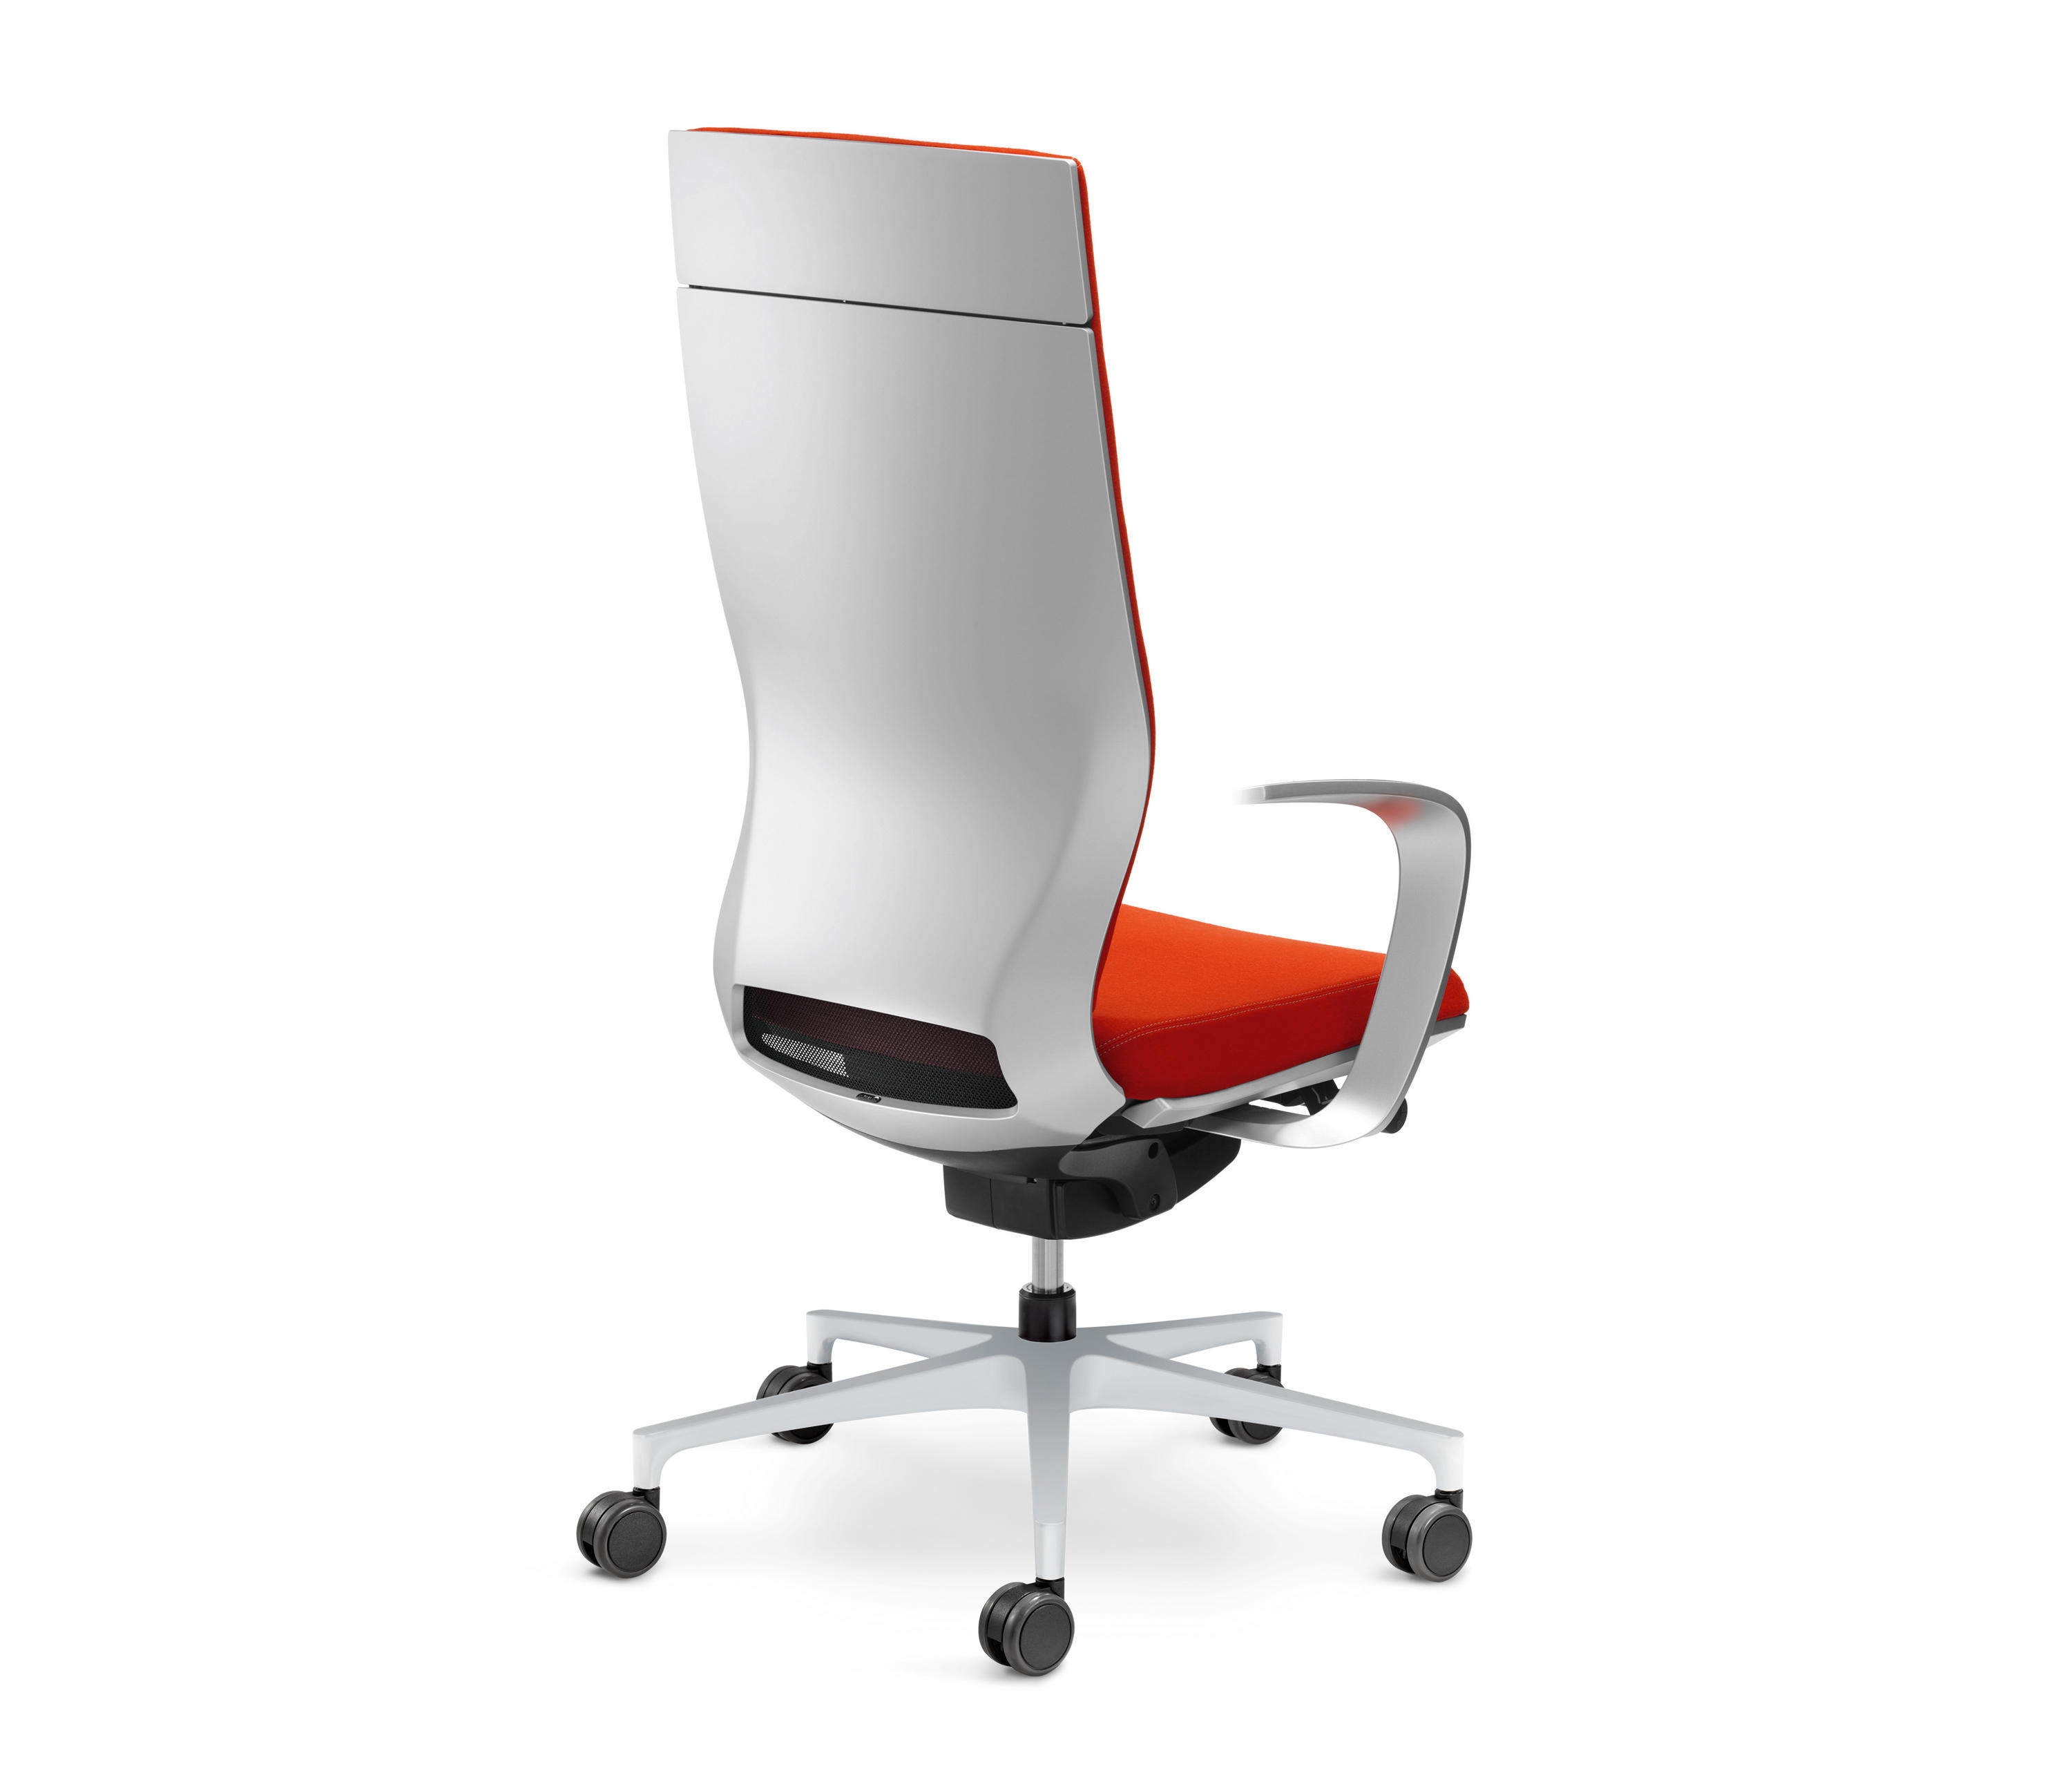 Moteo Perfect Office Swivel Chair By Klöber Chairs